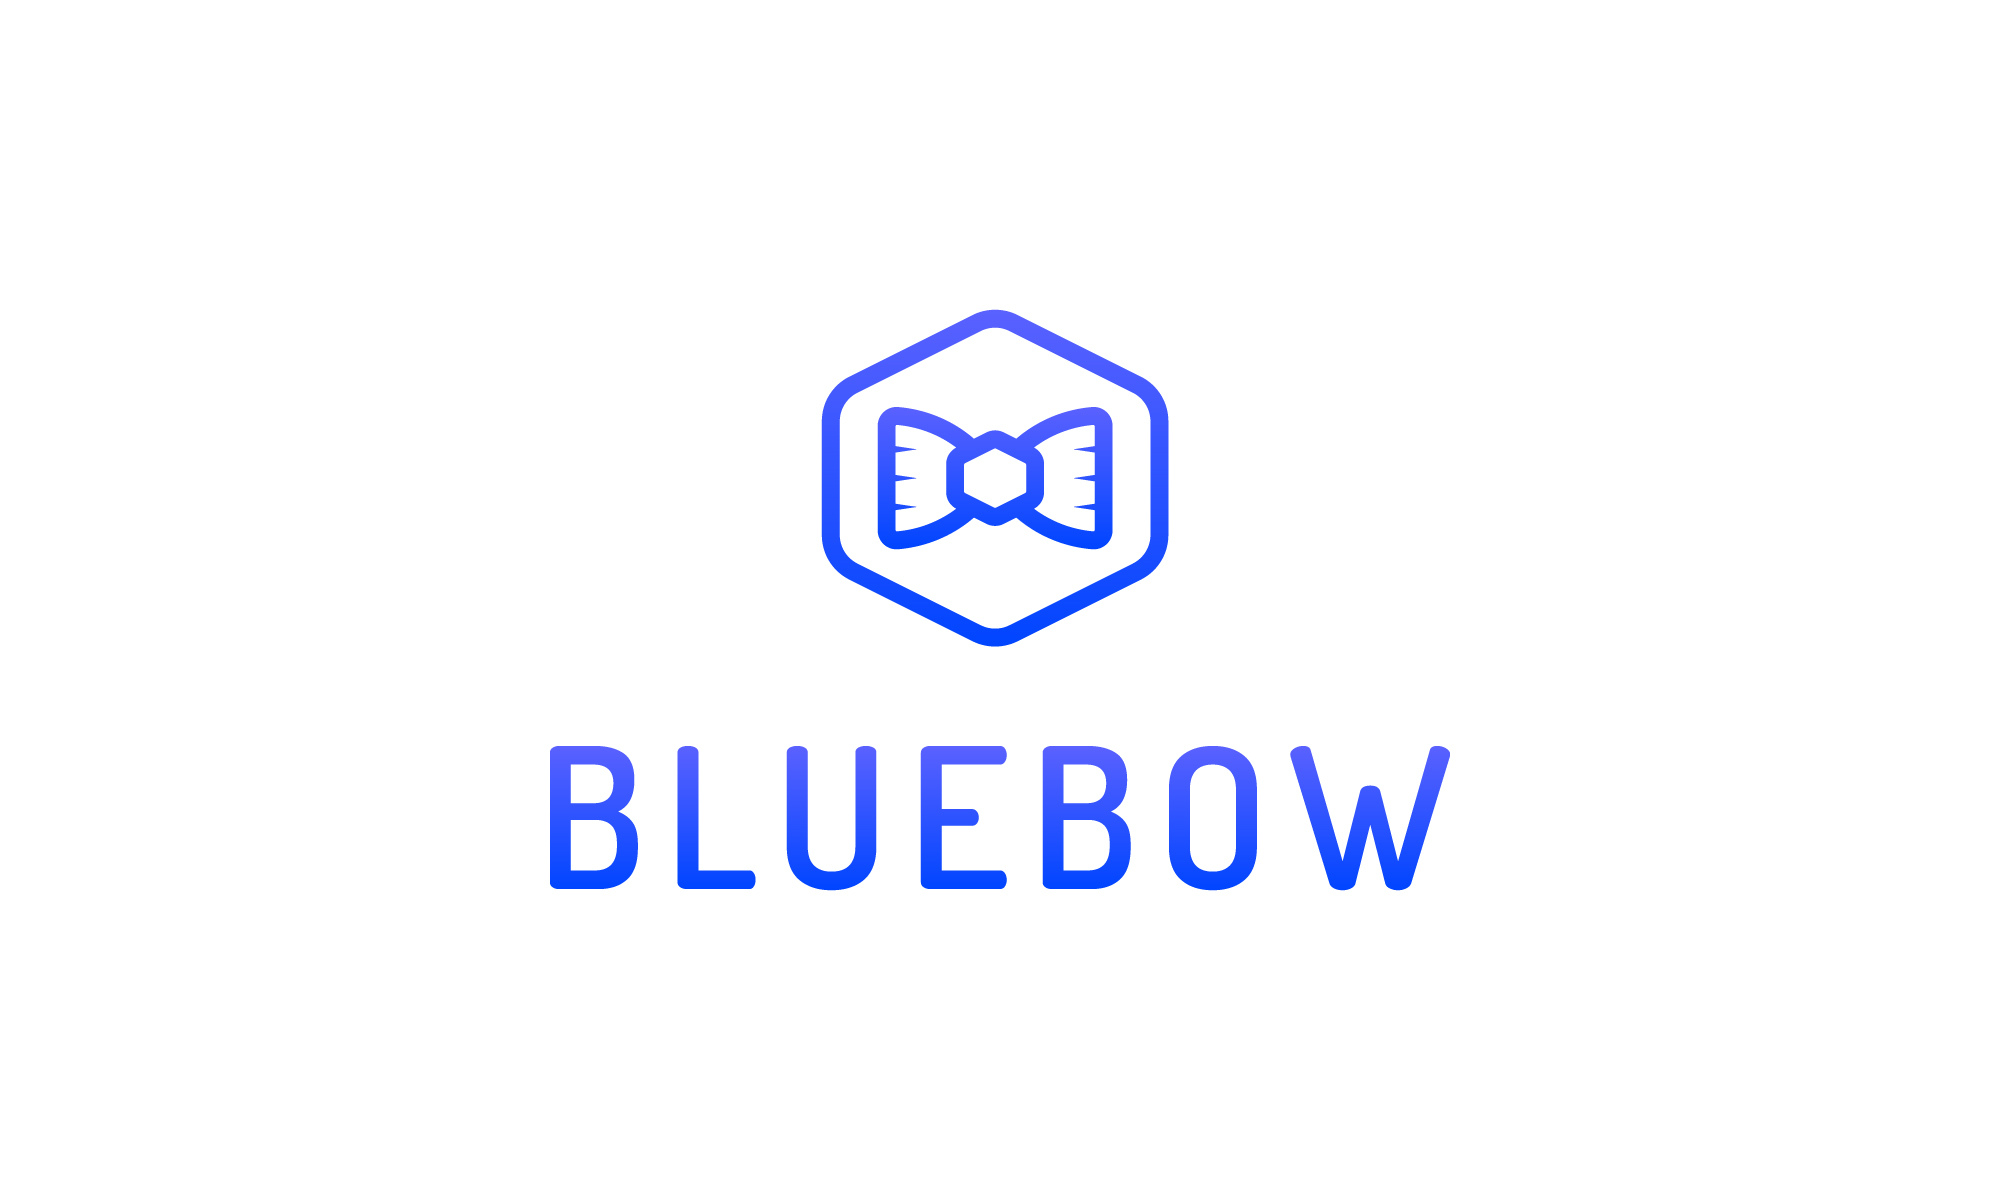 bluebow-2